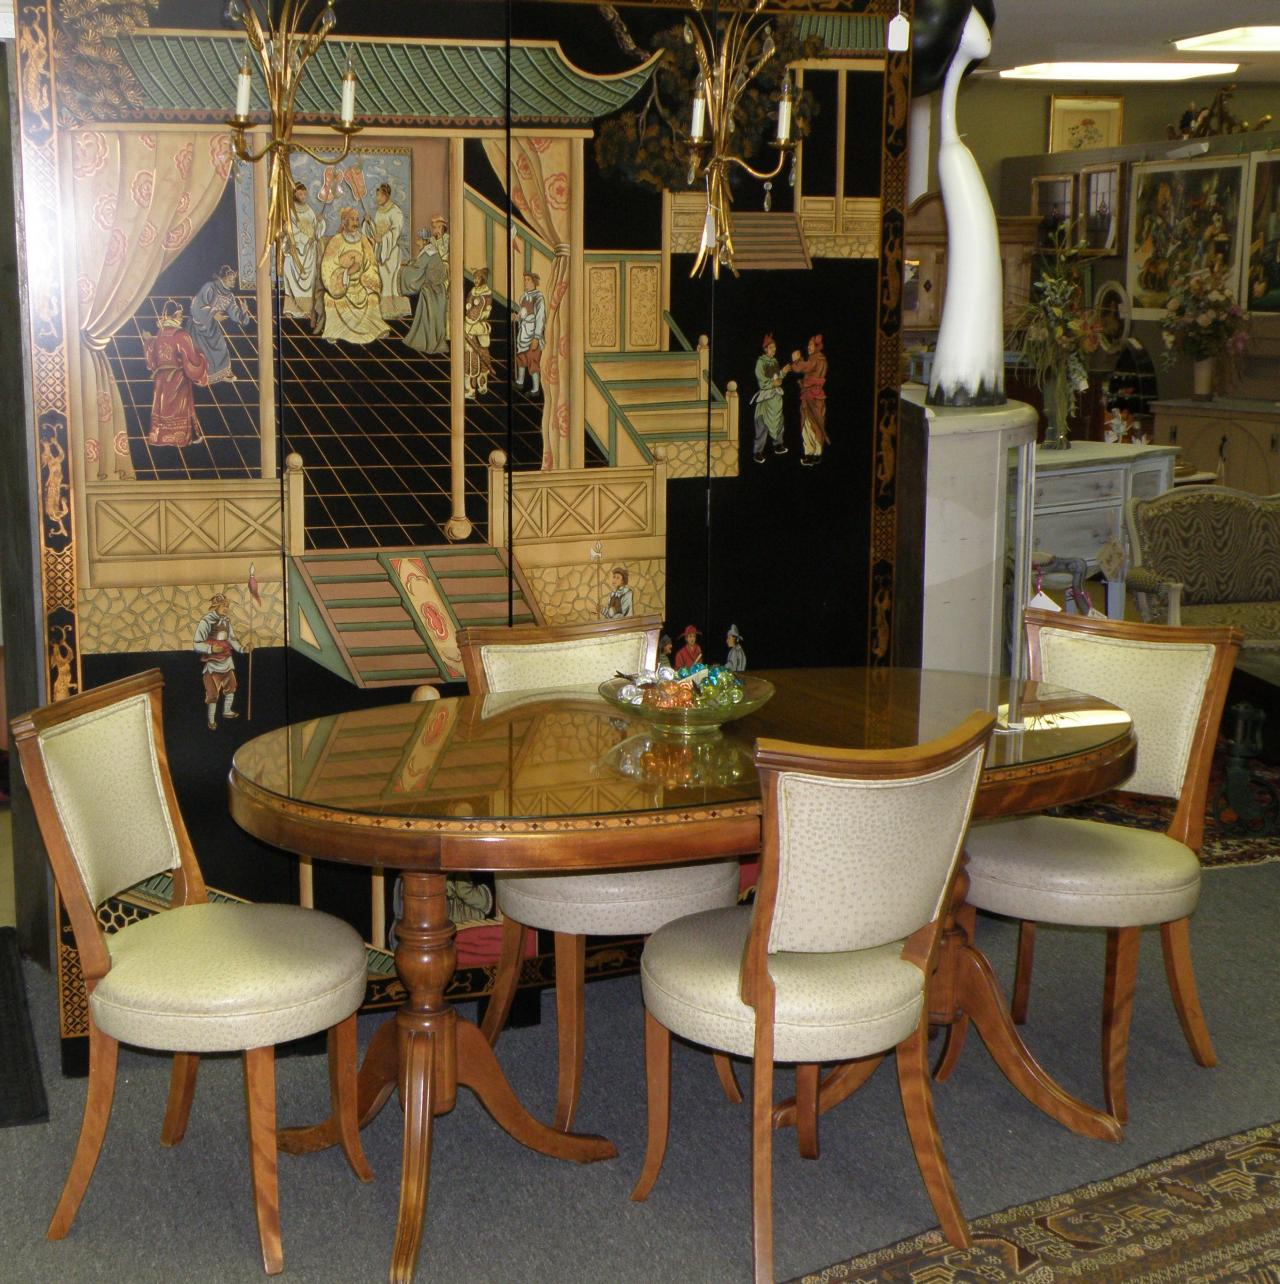 ... Dining Table And 4 Chairs Vignette.